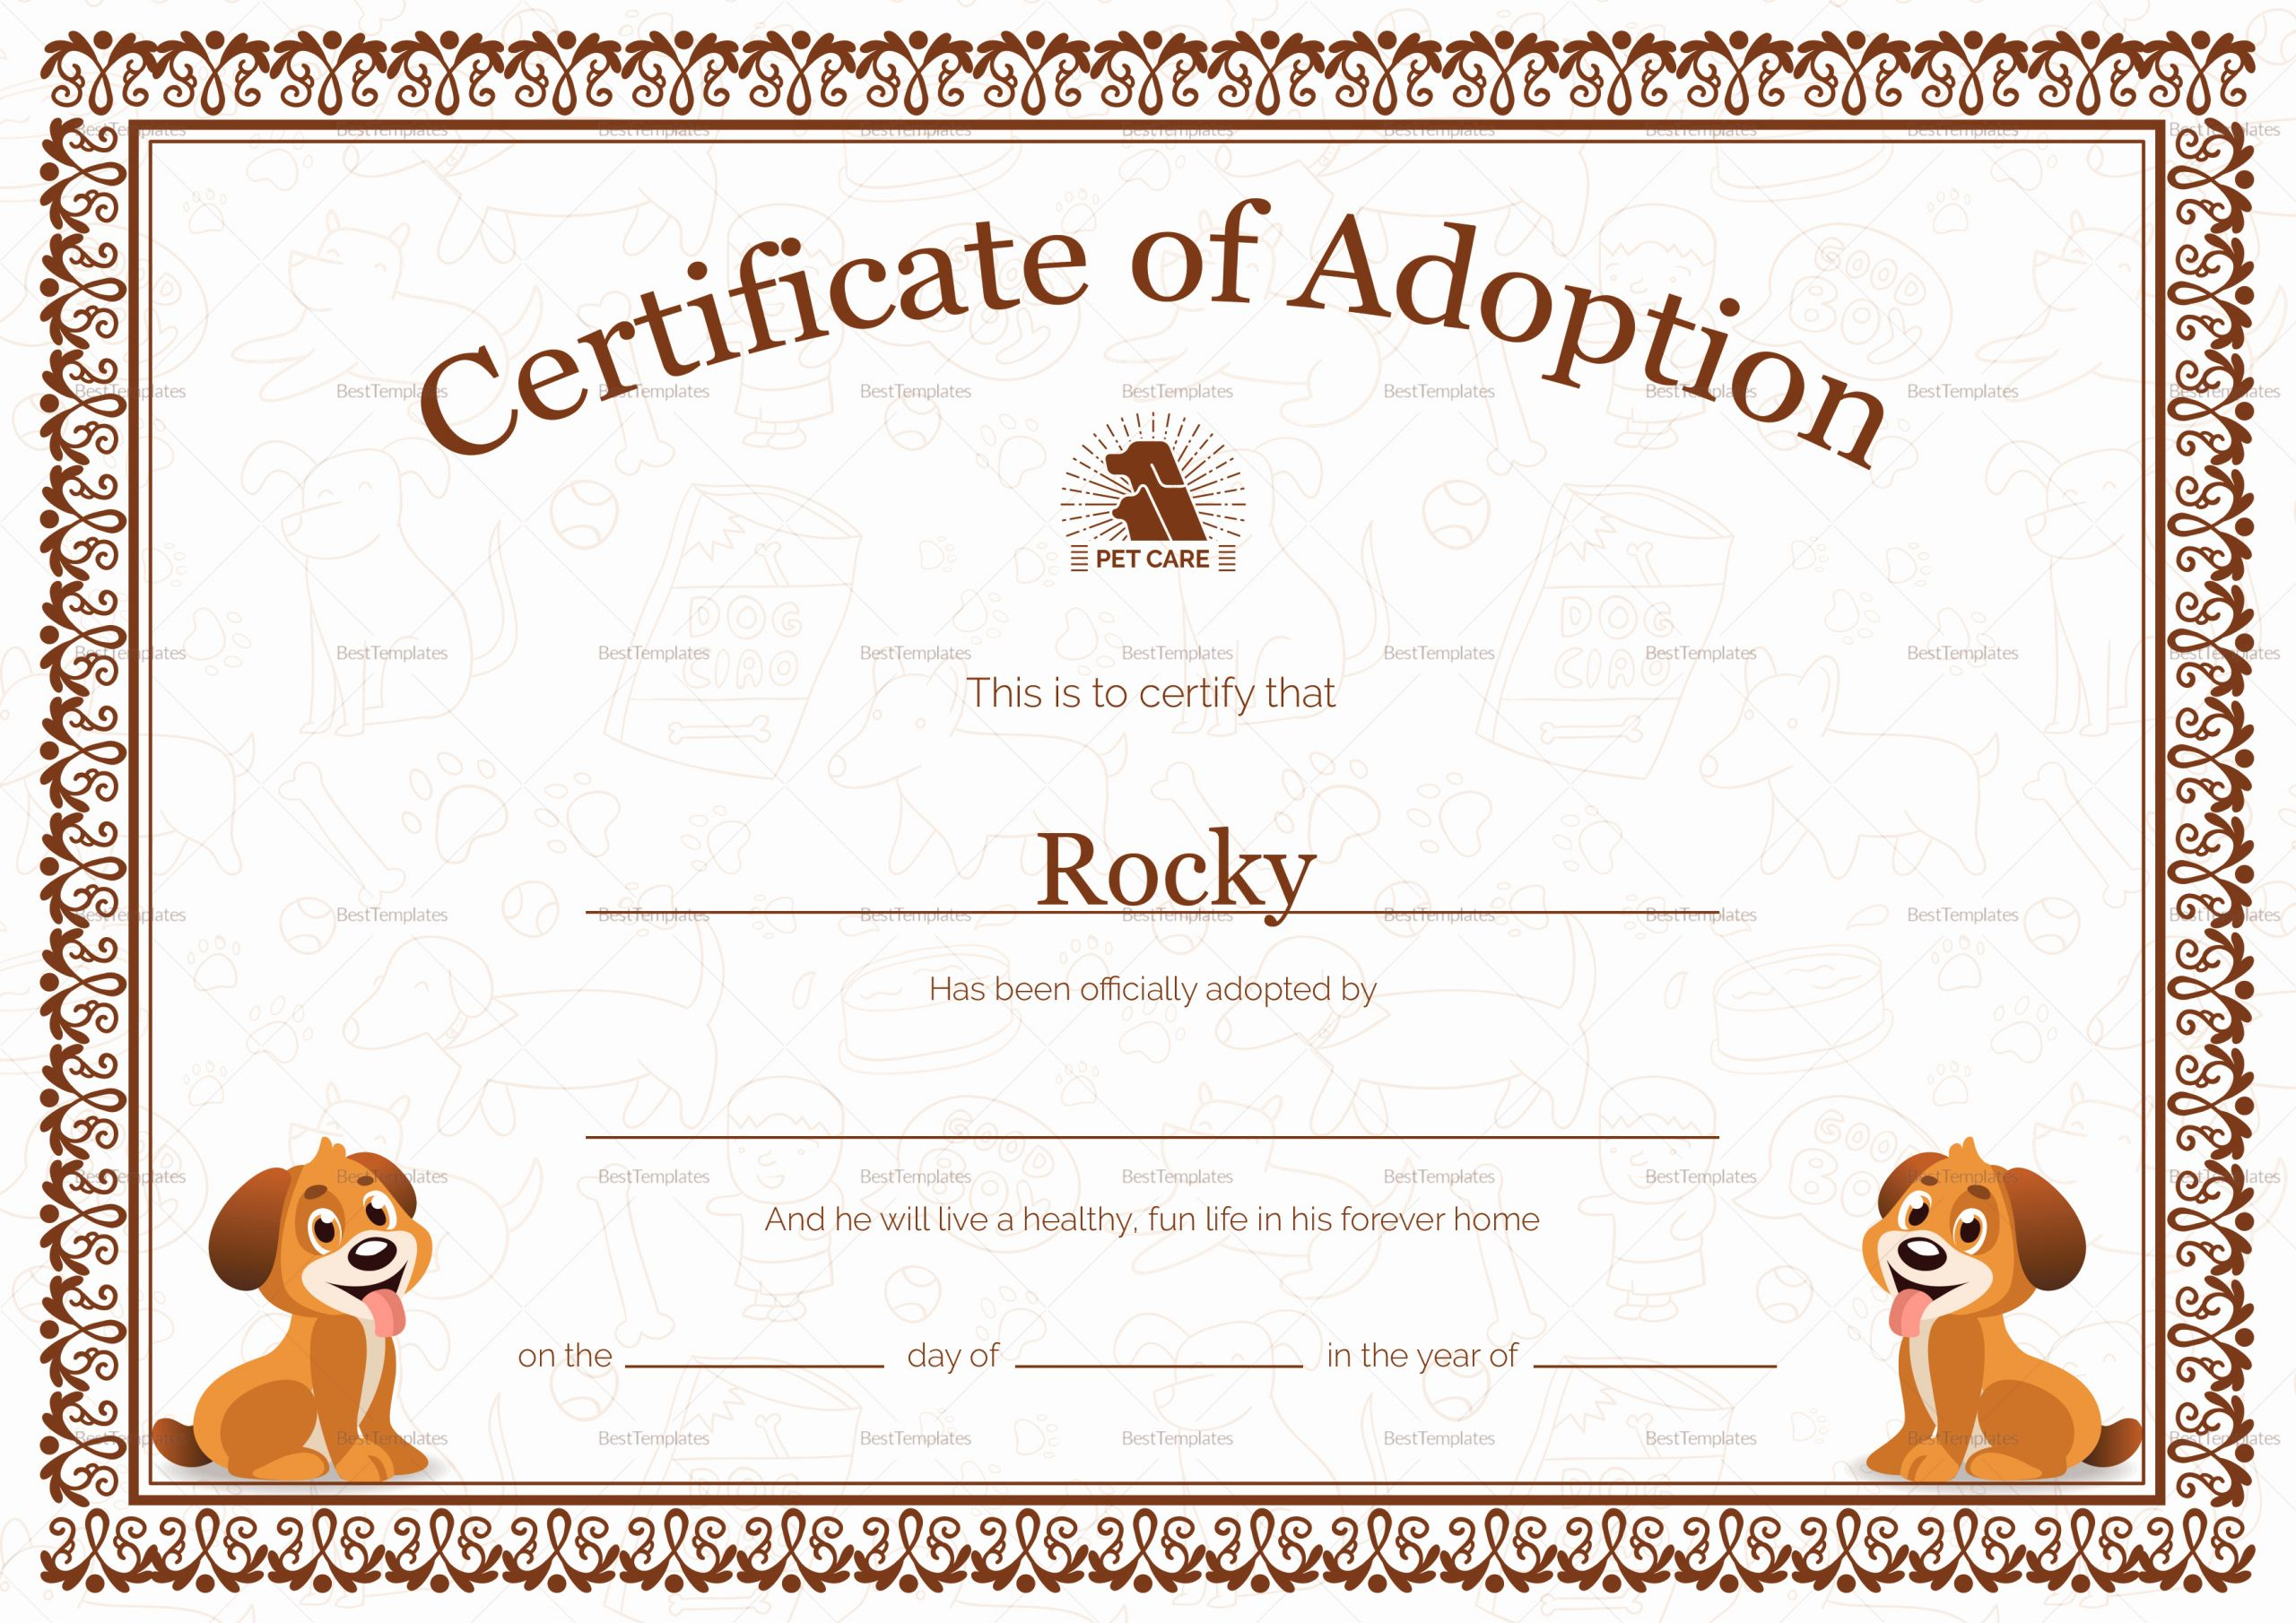 Adoption Certificate Template Word Best Of Pet Adoption Certificate Design Template In Psd Word